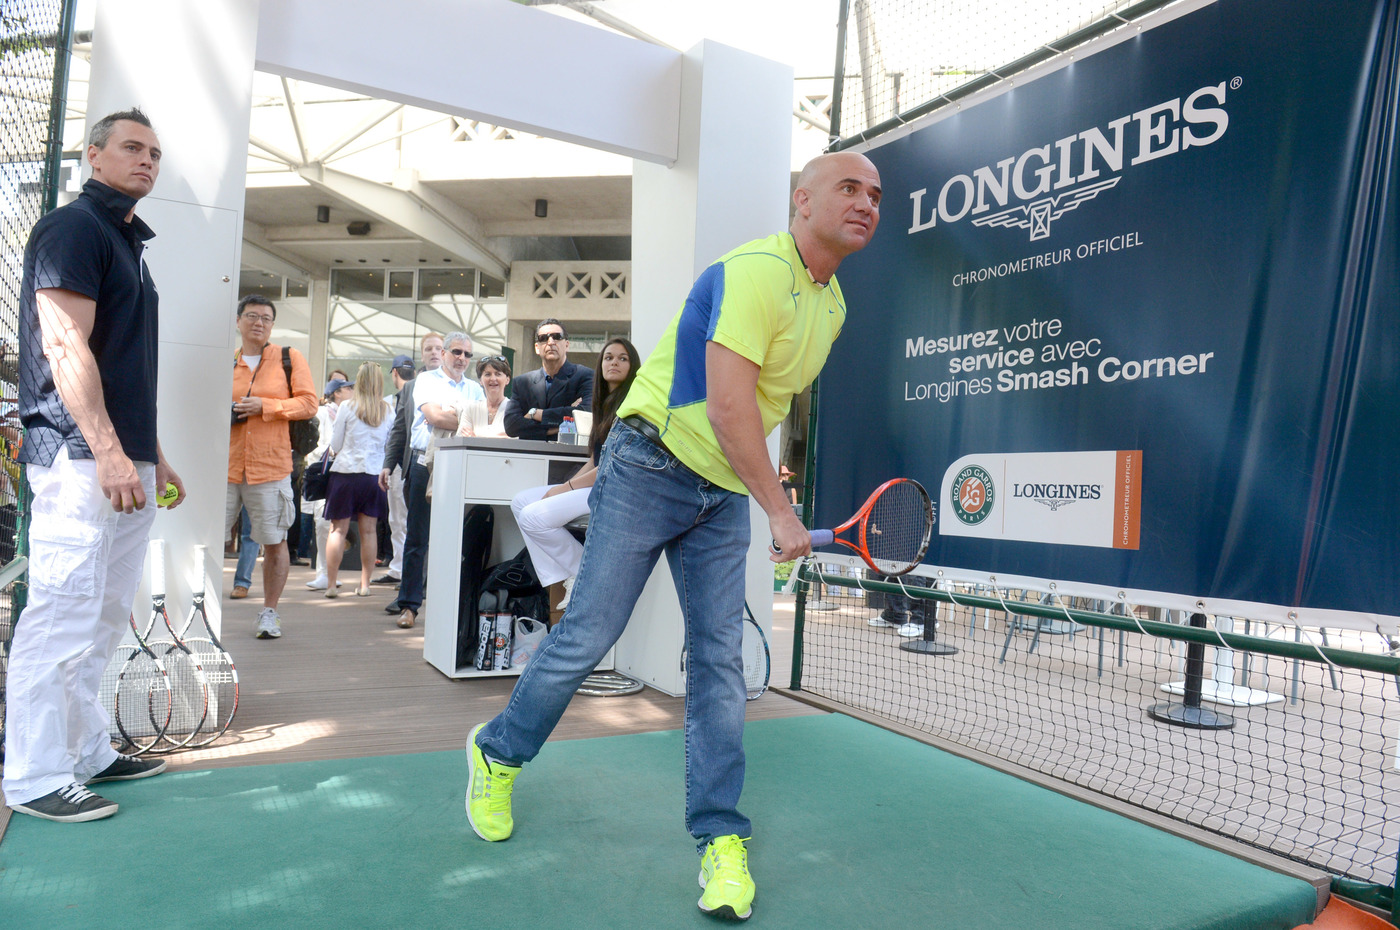 Longines Corporate Event: Longines Ambassador of Elegance Andre Agassi in Paris this weekend 4